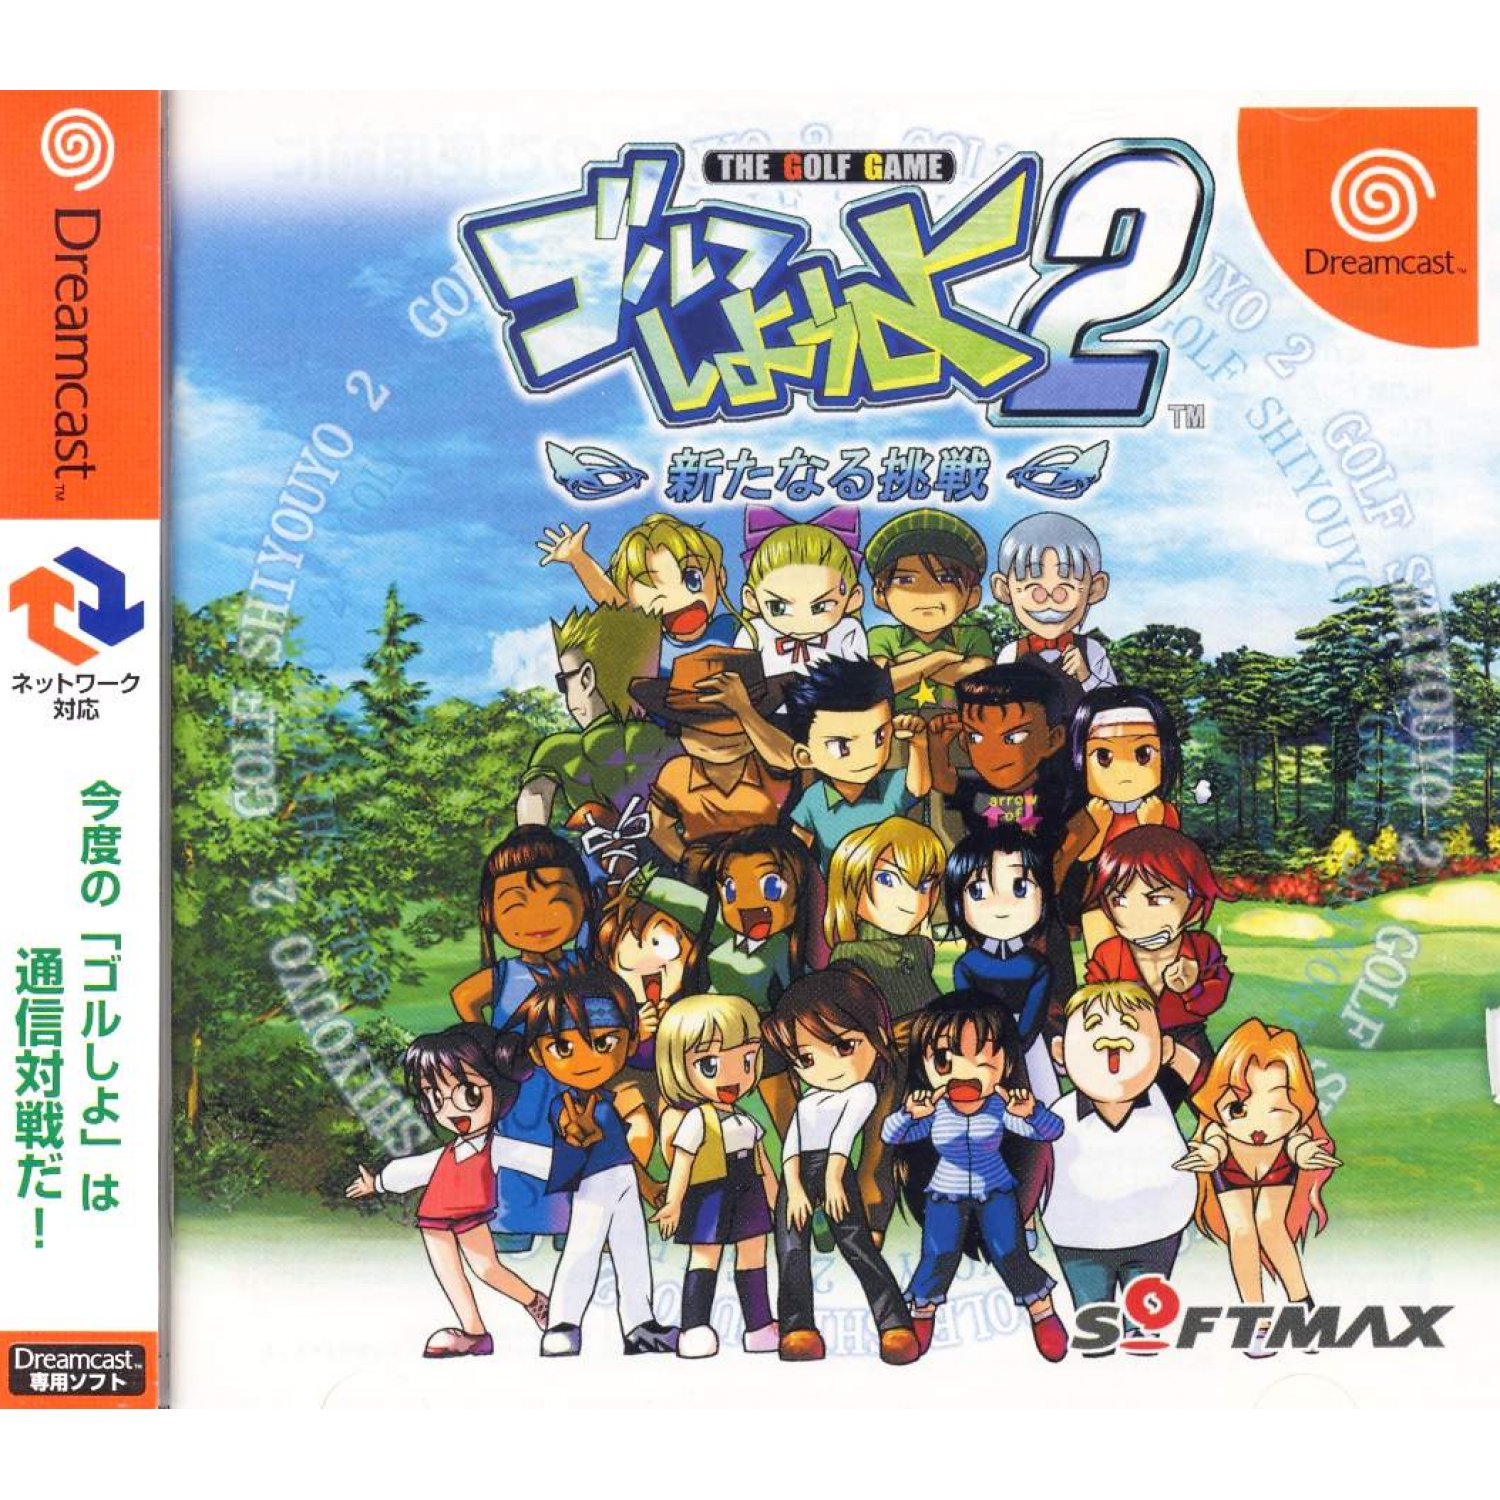 tee off 2 dreamcast